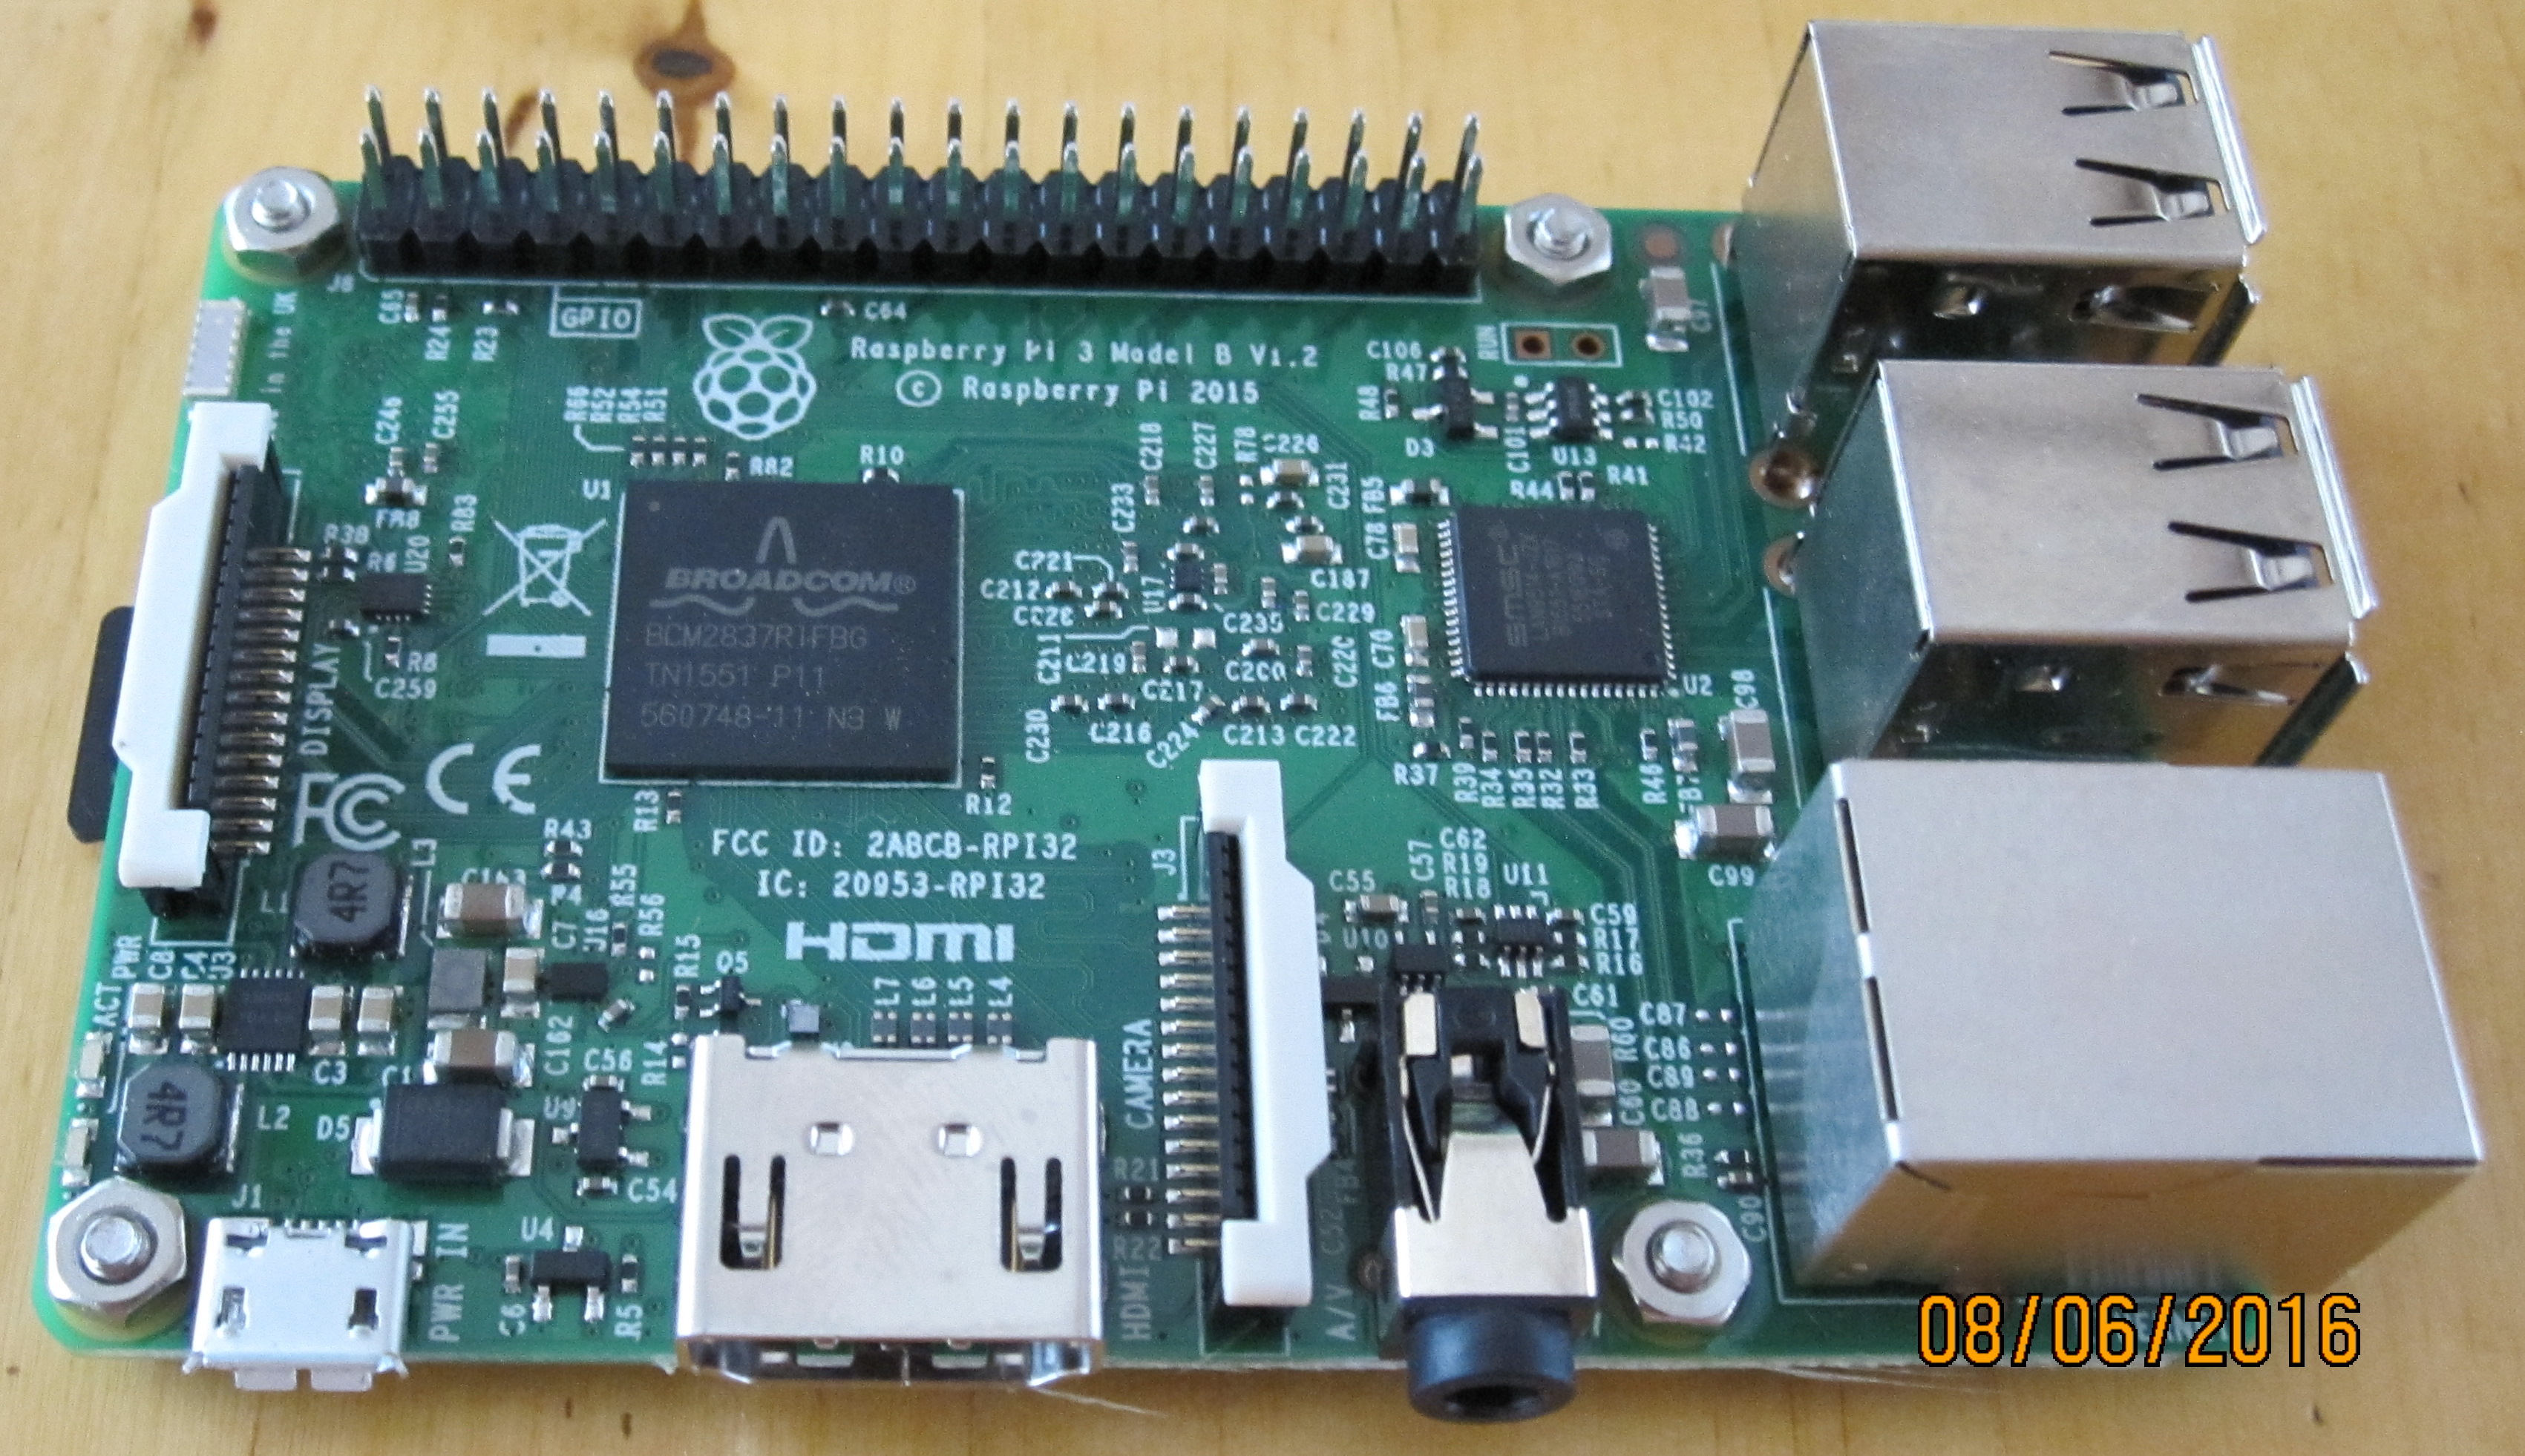 learn_raspberry_pi_pitop-8.jpg